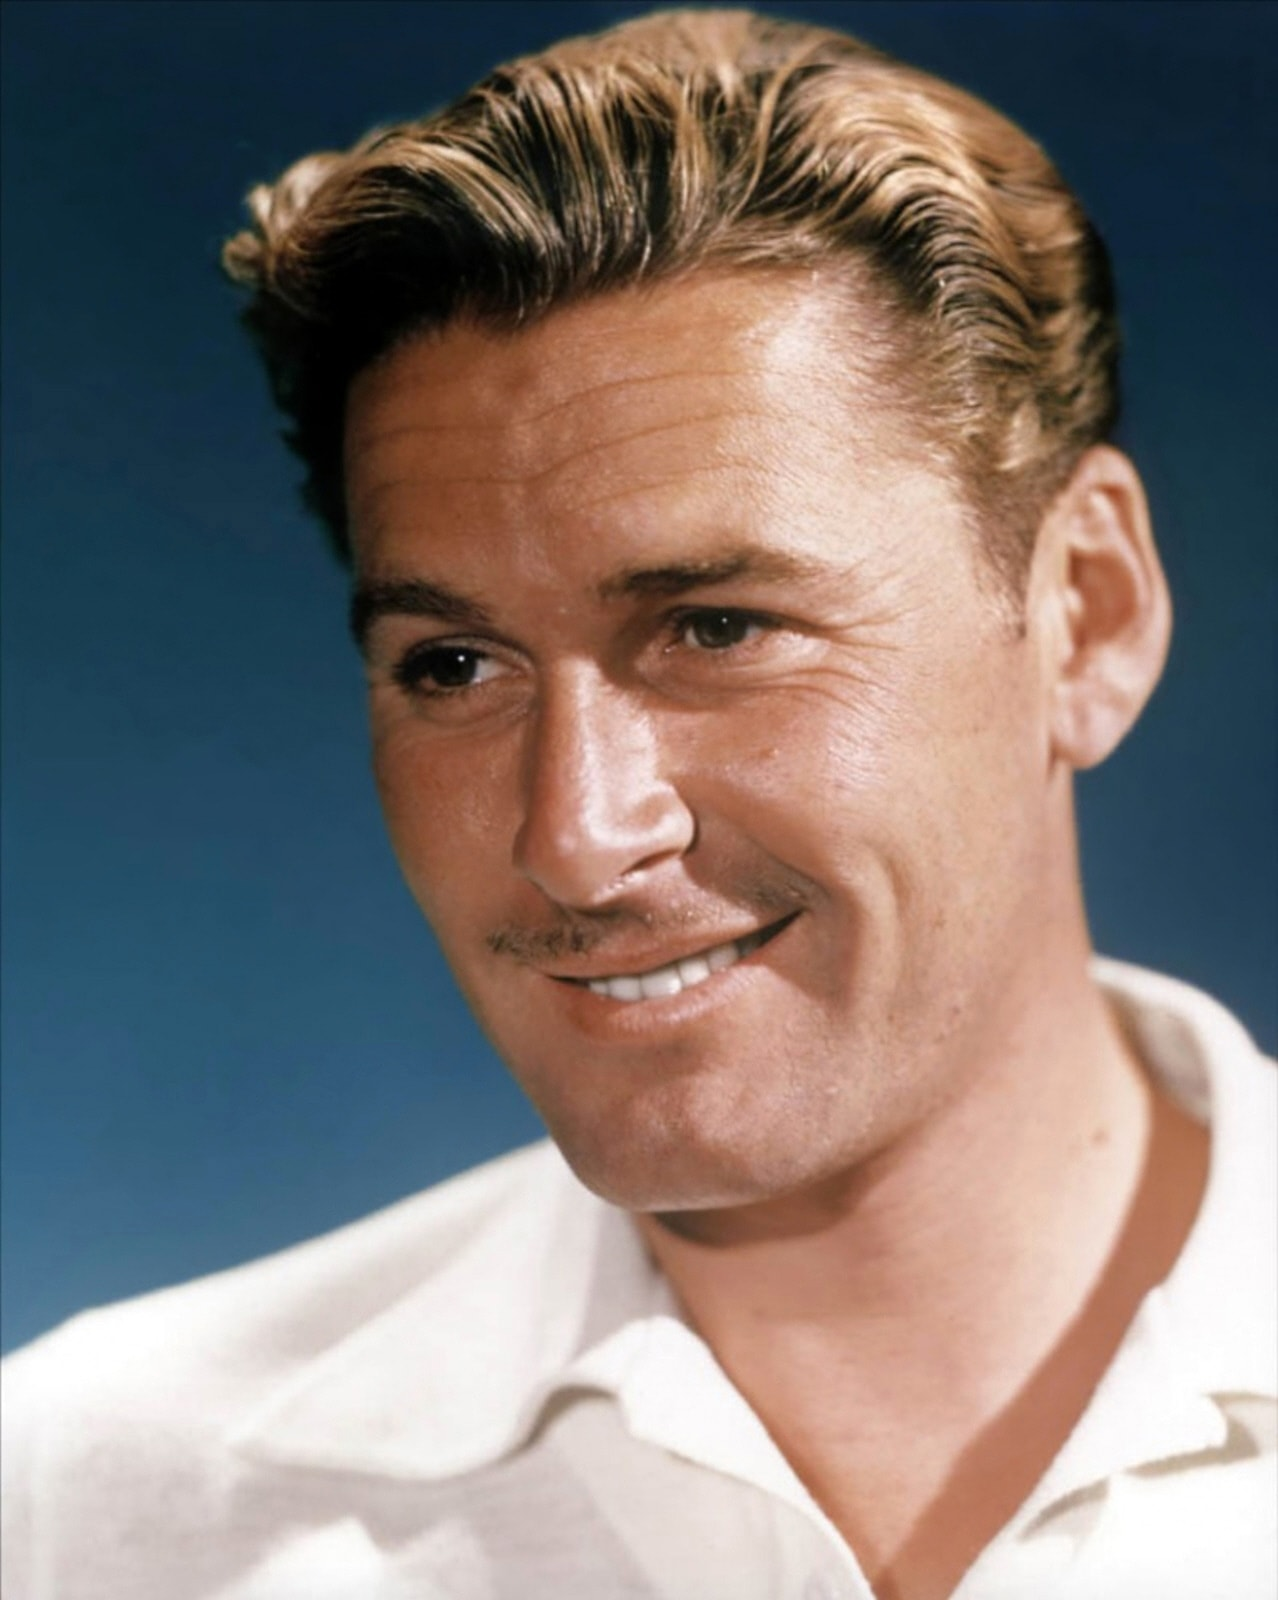 Errol Flynn Wallpapers hd